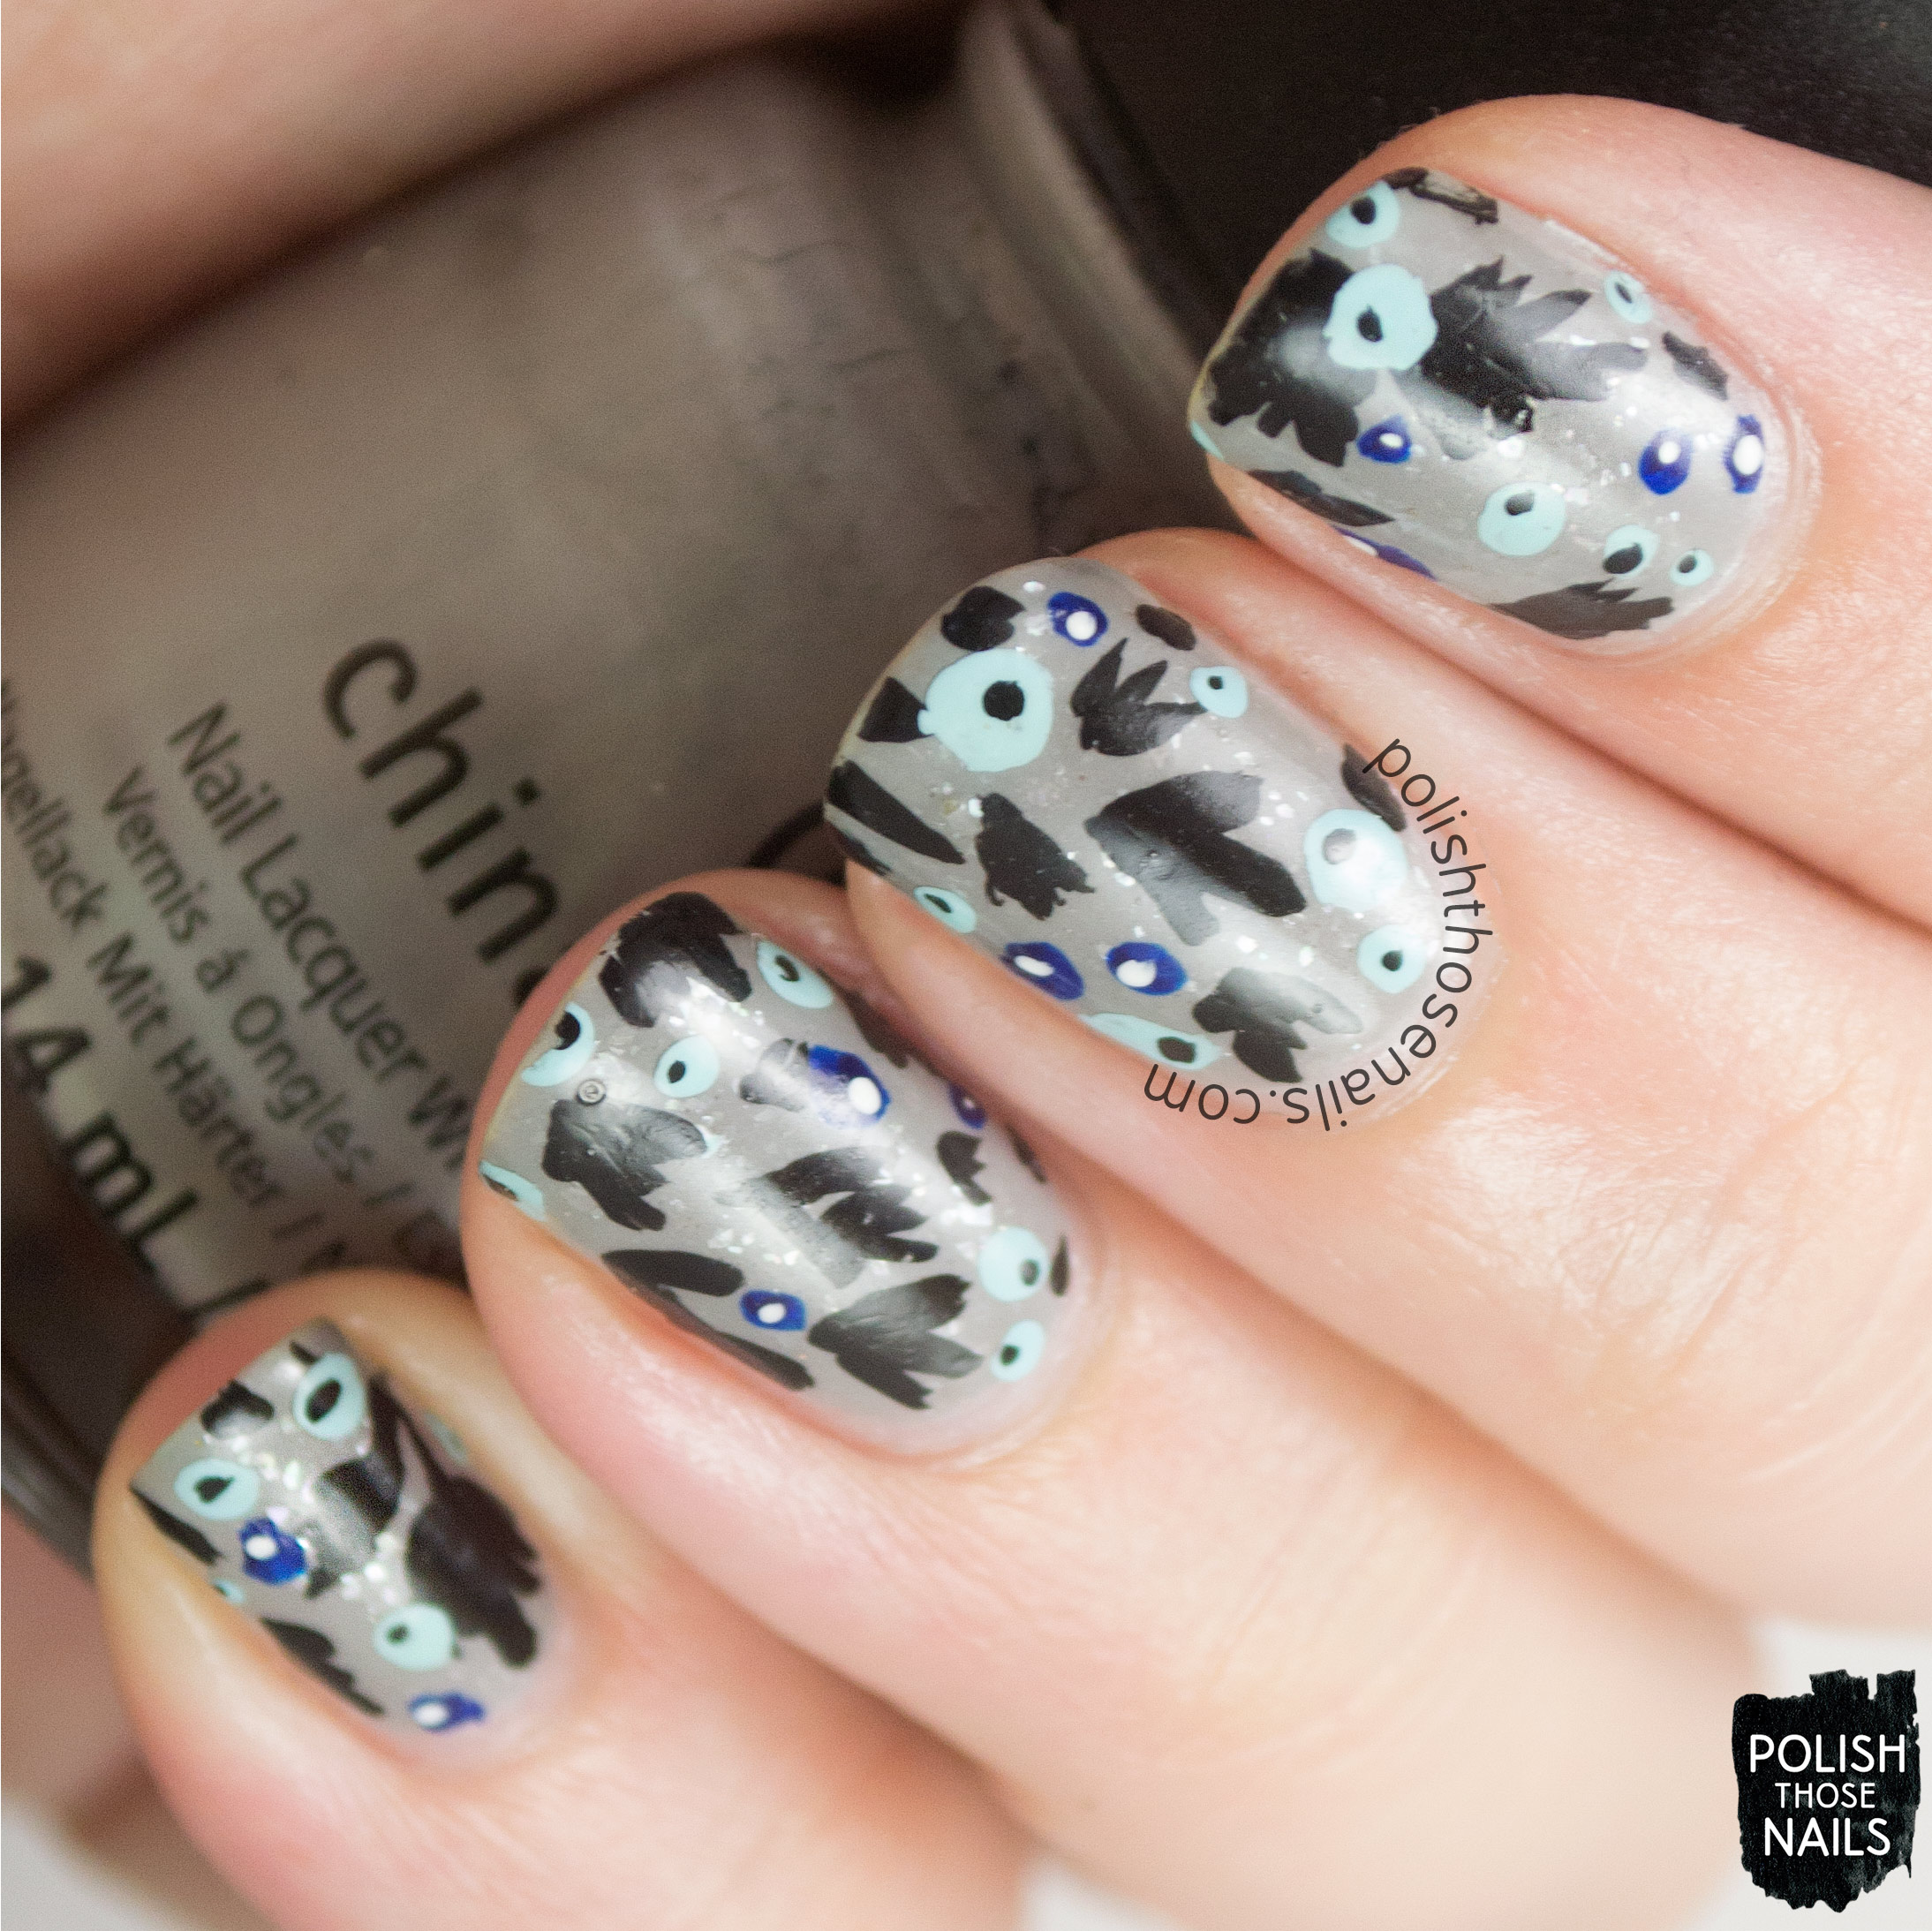 nails, nail art, nail polish, pattern, polish those nails, guest post,